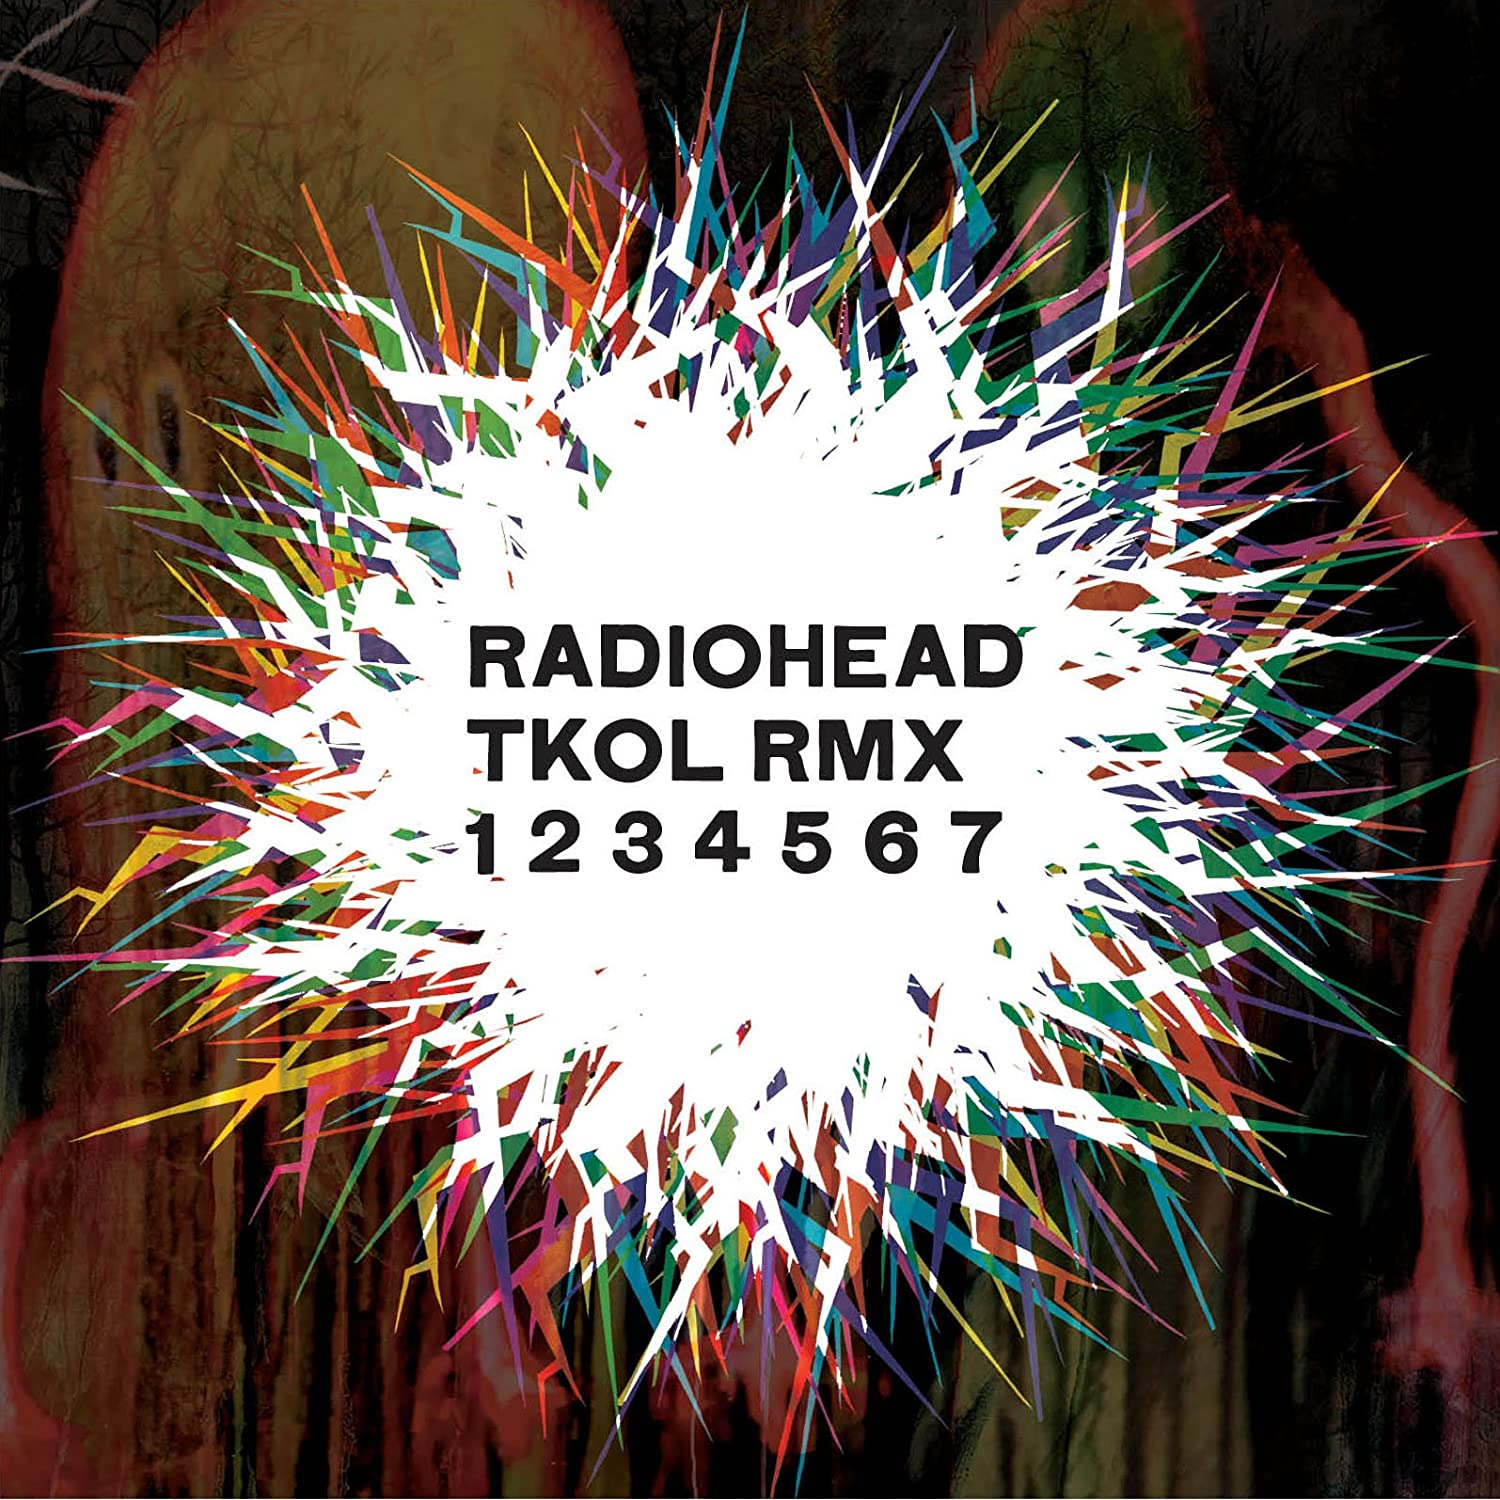 Radiohead Tkol Rmx 1234567 2 Cd Amazon Music